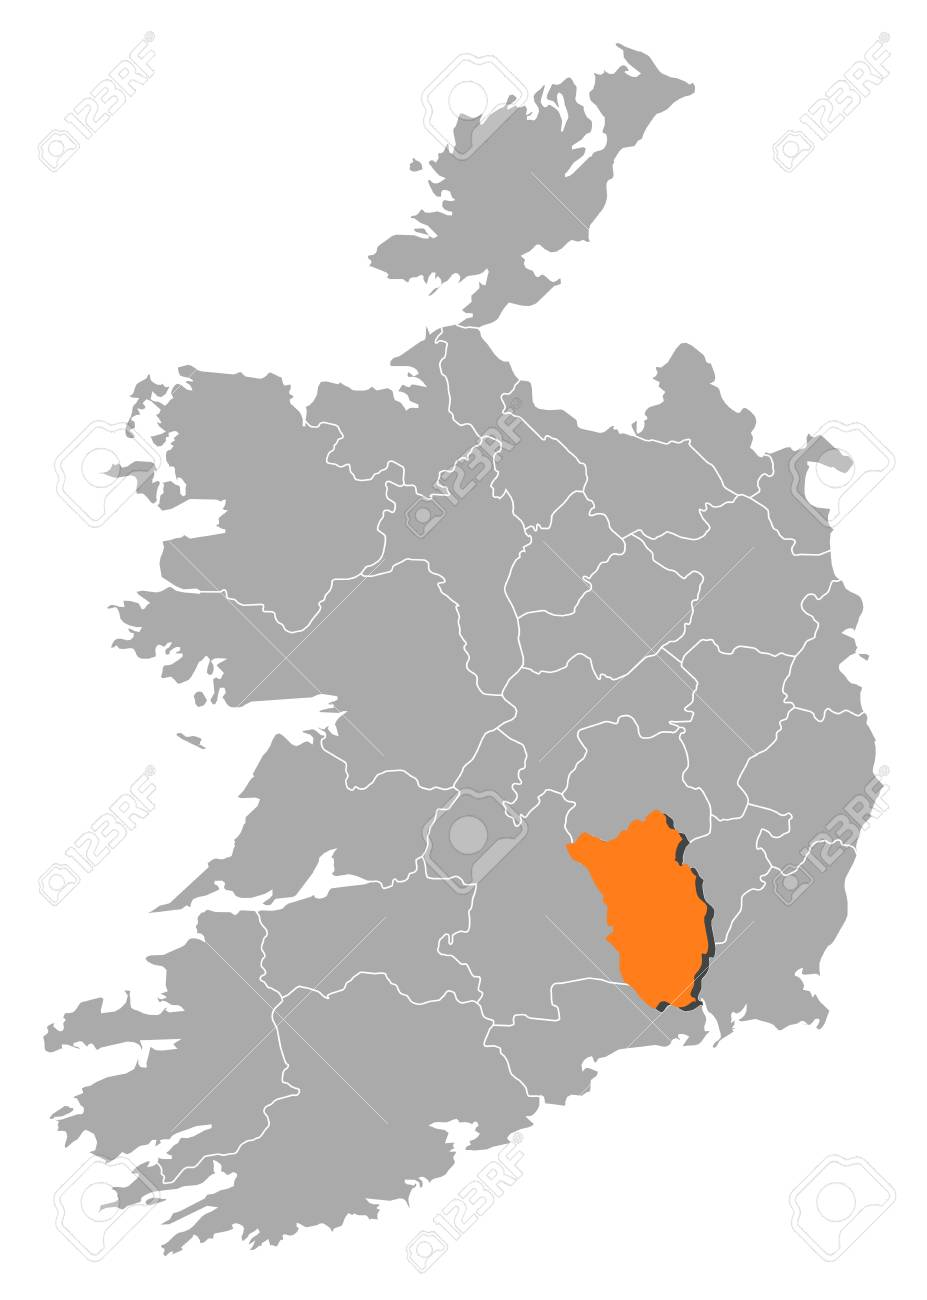 Map Of Ireland Showing Kilkenny.Map Of Ireland With The Provinces Kilkenny Is Highlighted By